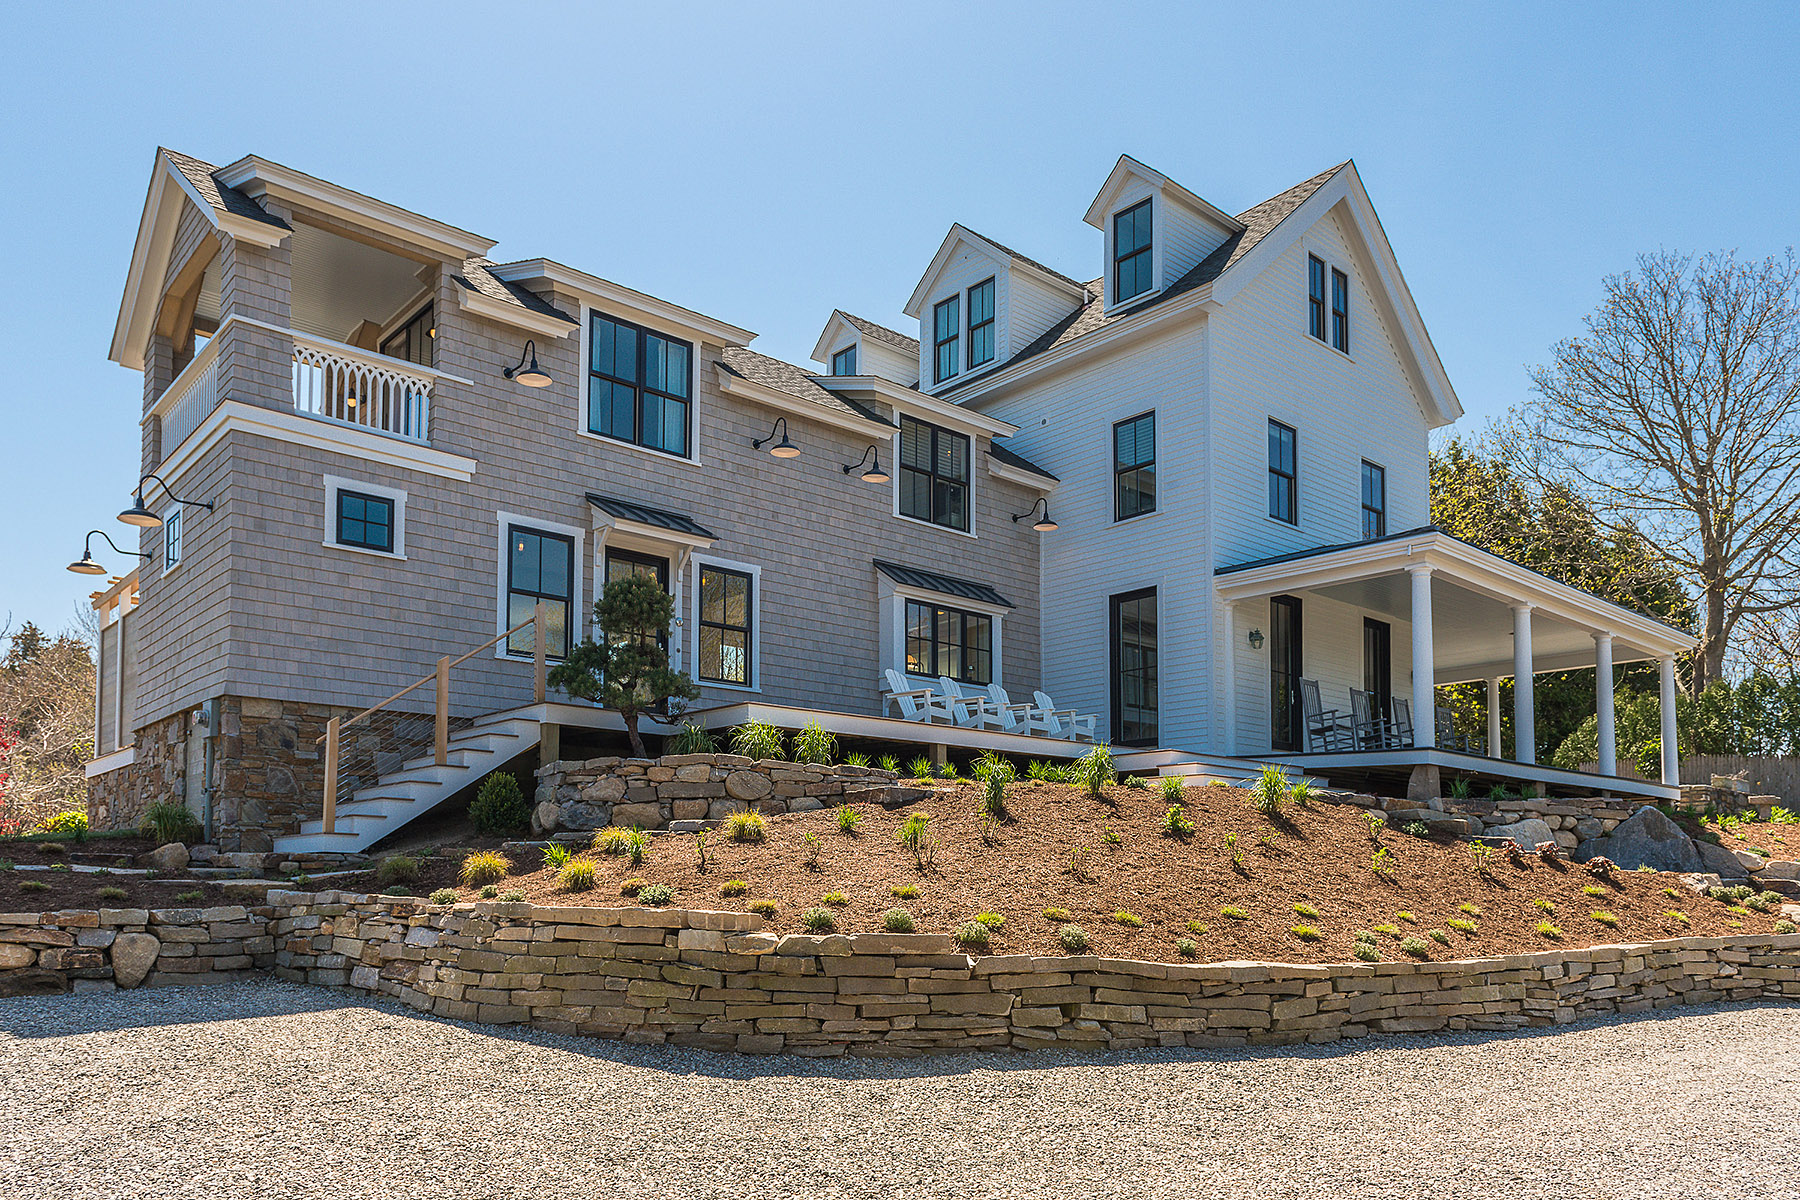 Single Family Home for Sale at Greycote 18 Wauwinnet Avenue Watch Hill Village Westerly, Rhode Island 02891 United States